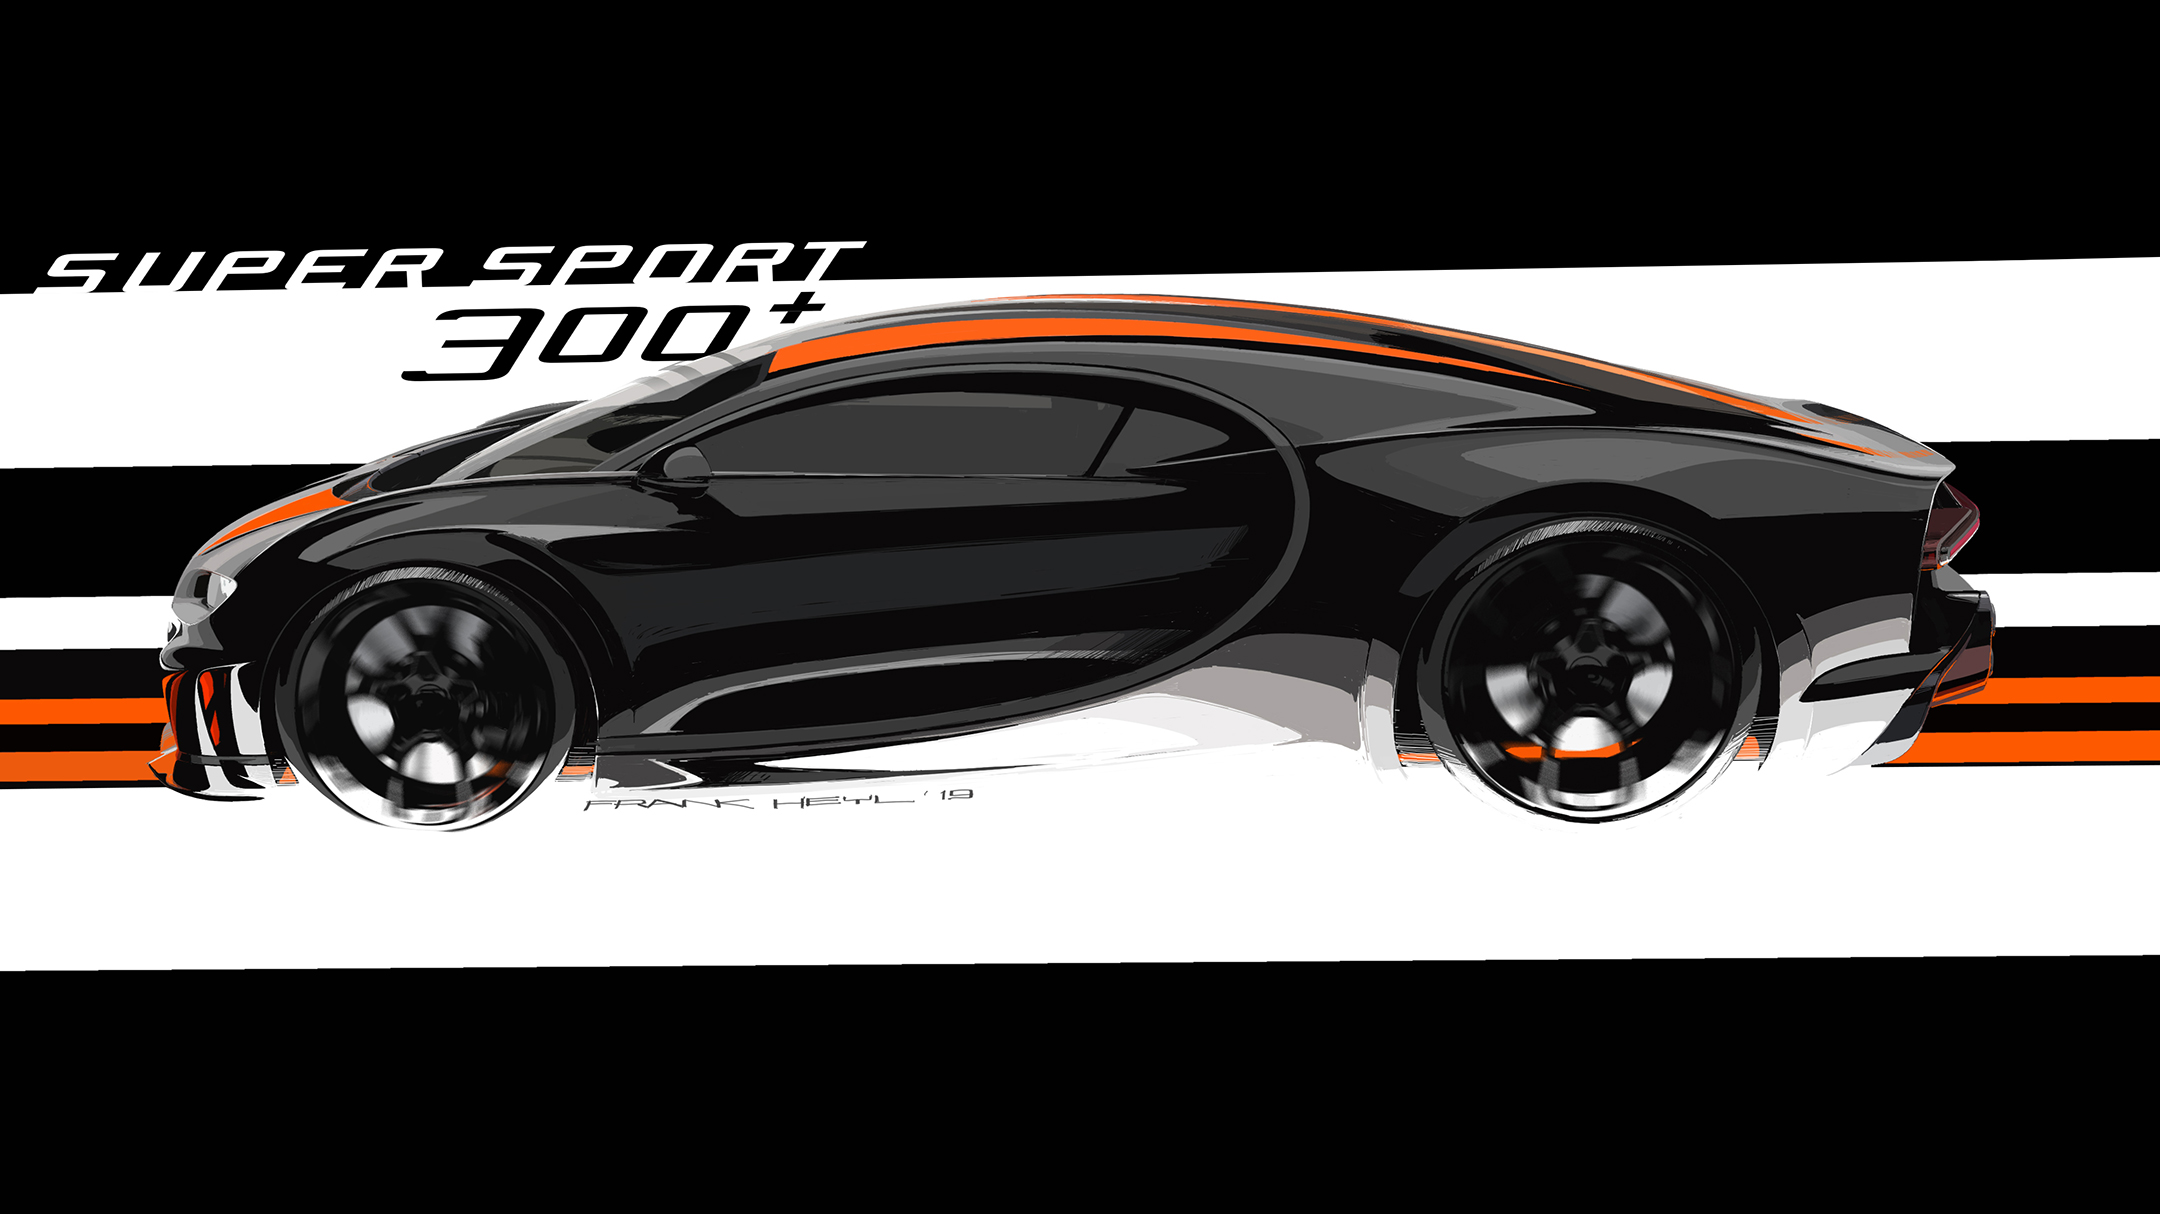 Bugatti Chiron Super Sport 300+ - 2019 - sketch design - side-face / profil